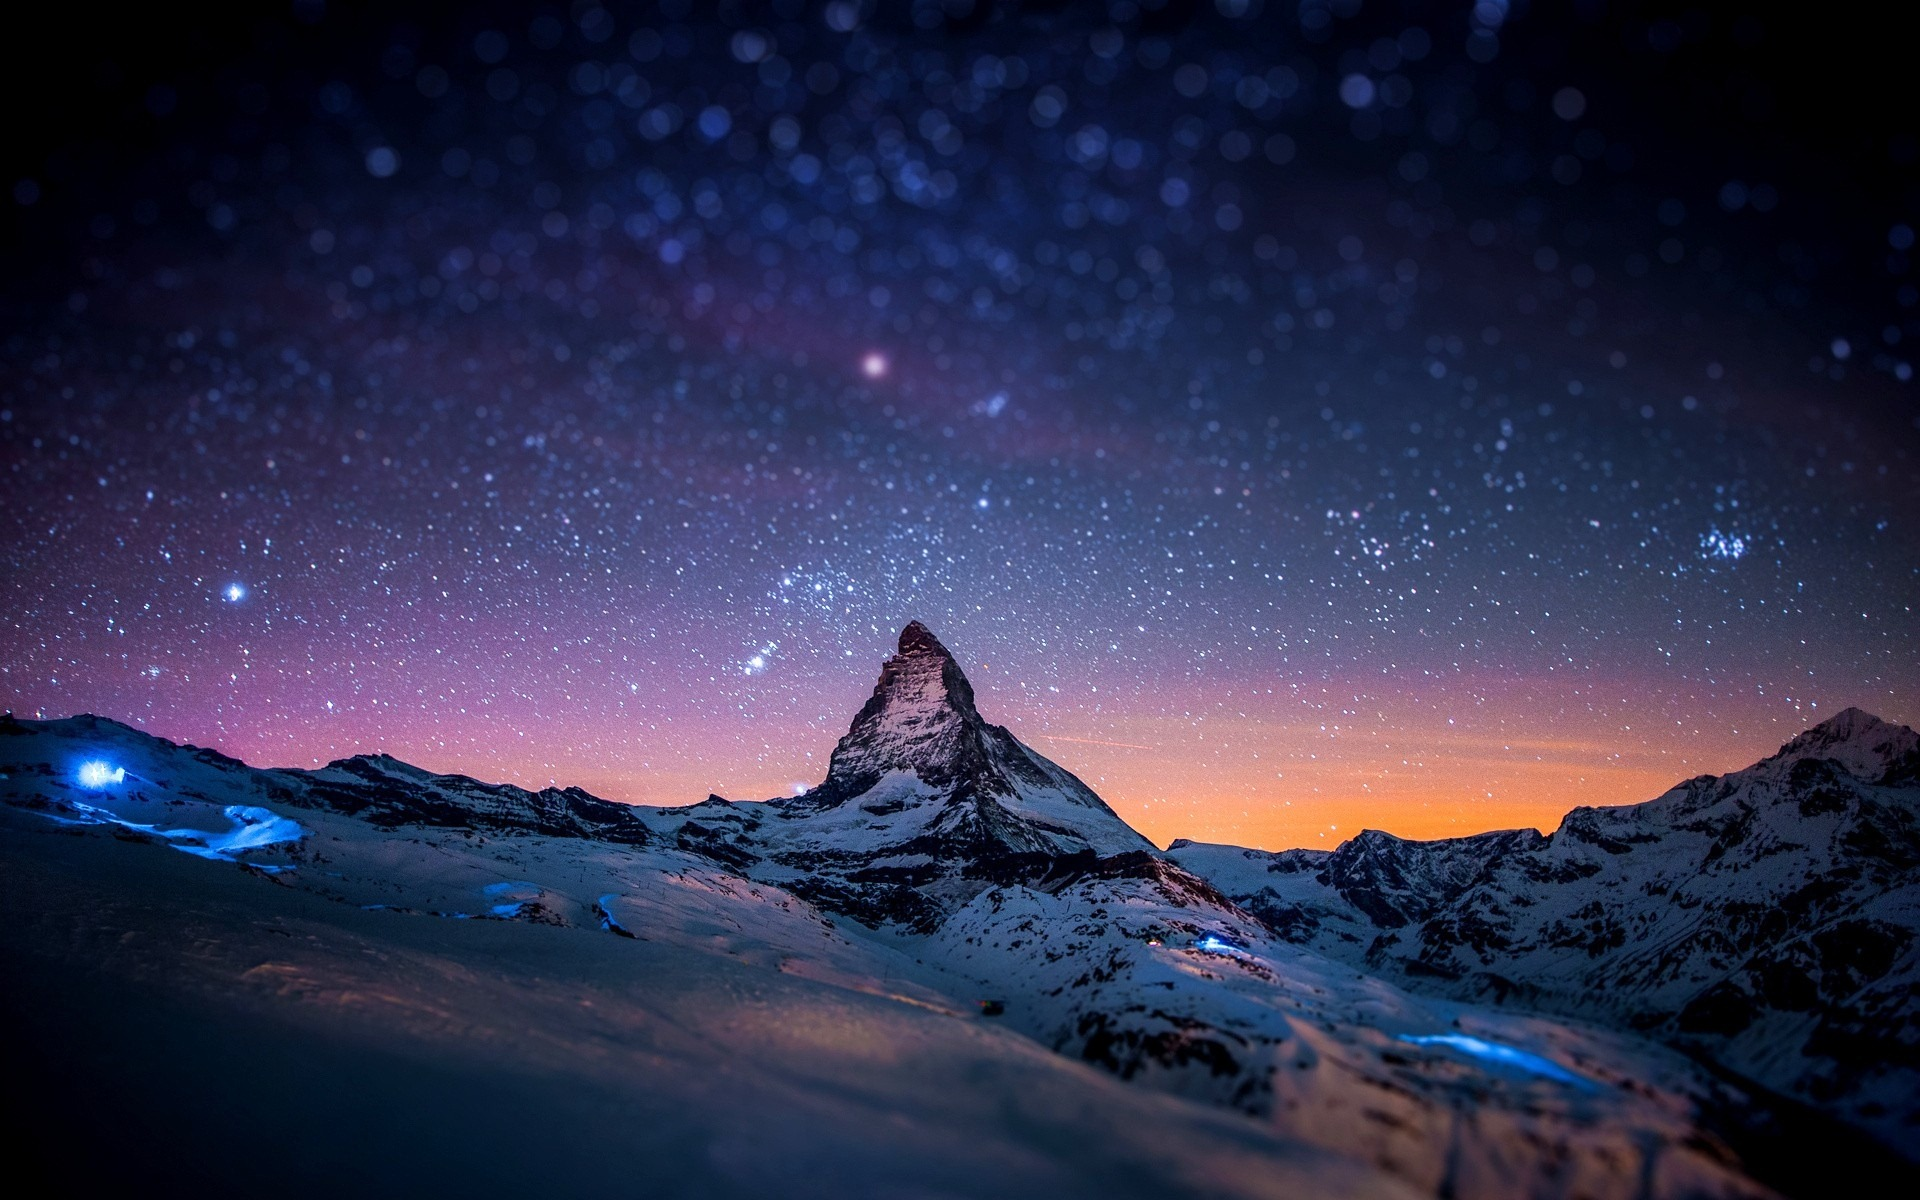 Night Sky over Snowy Mountains 353.03 Kb